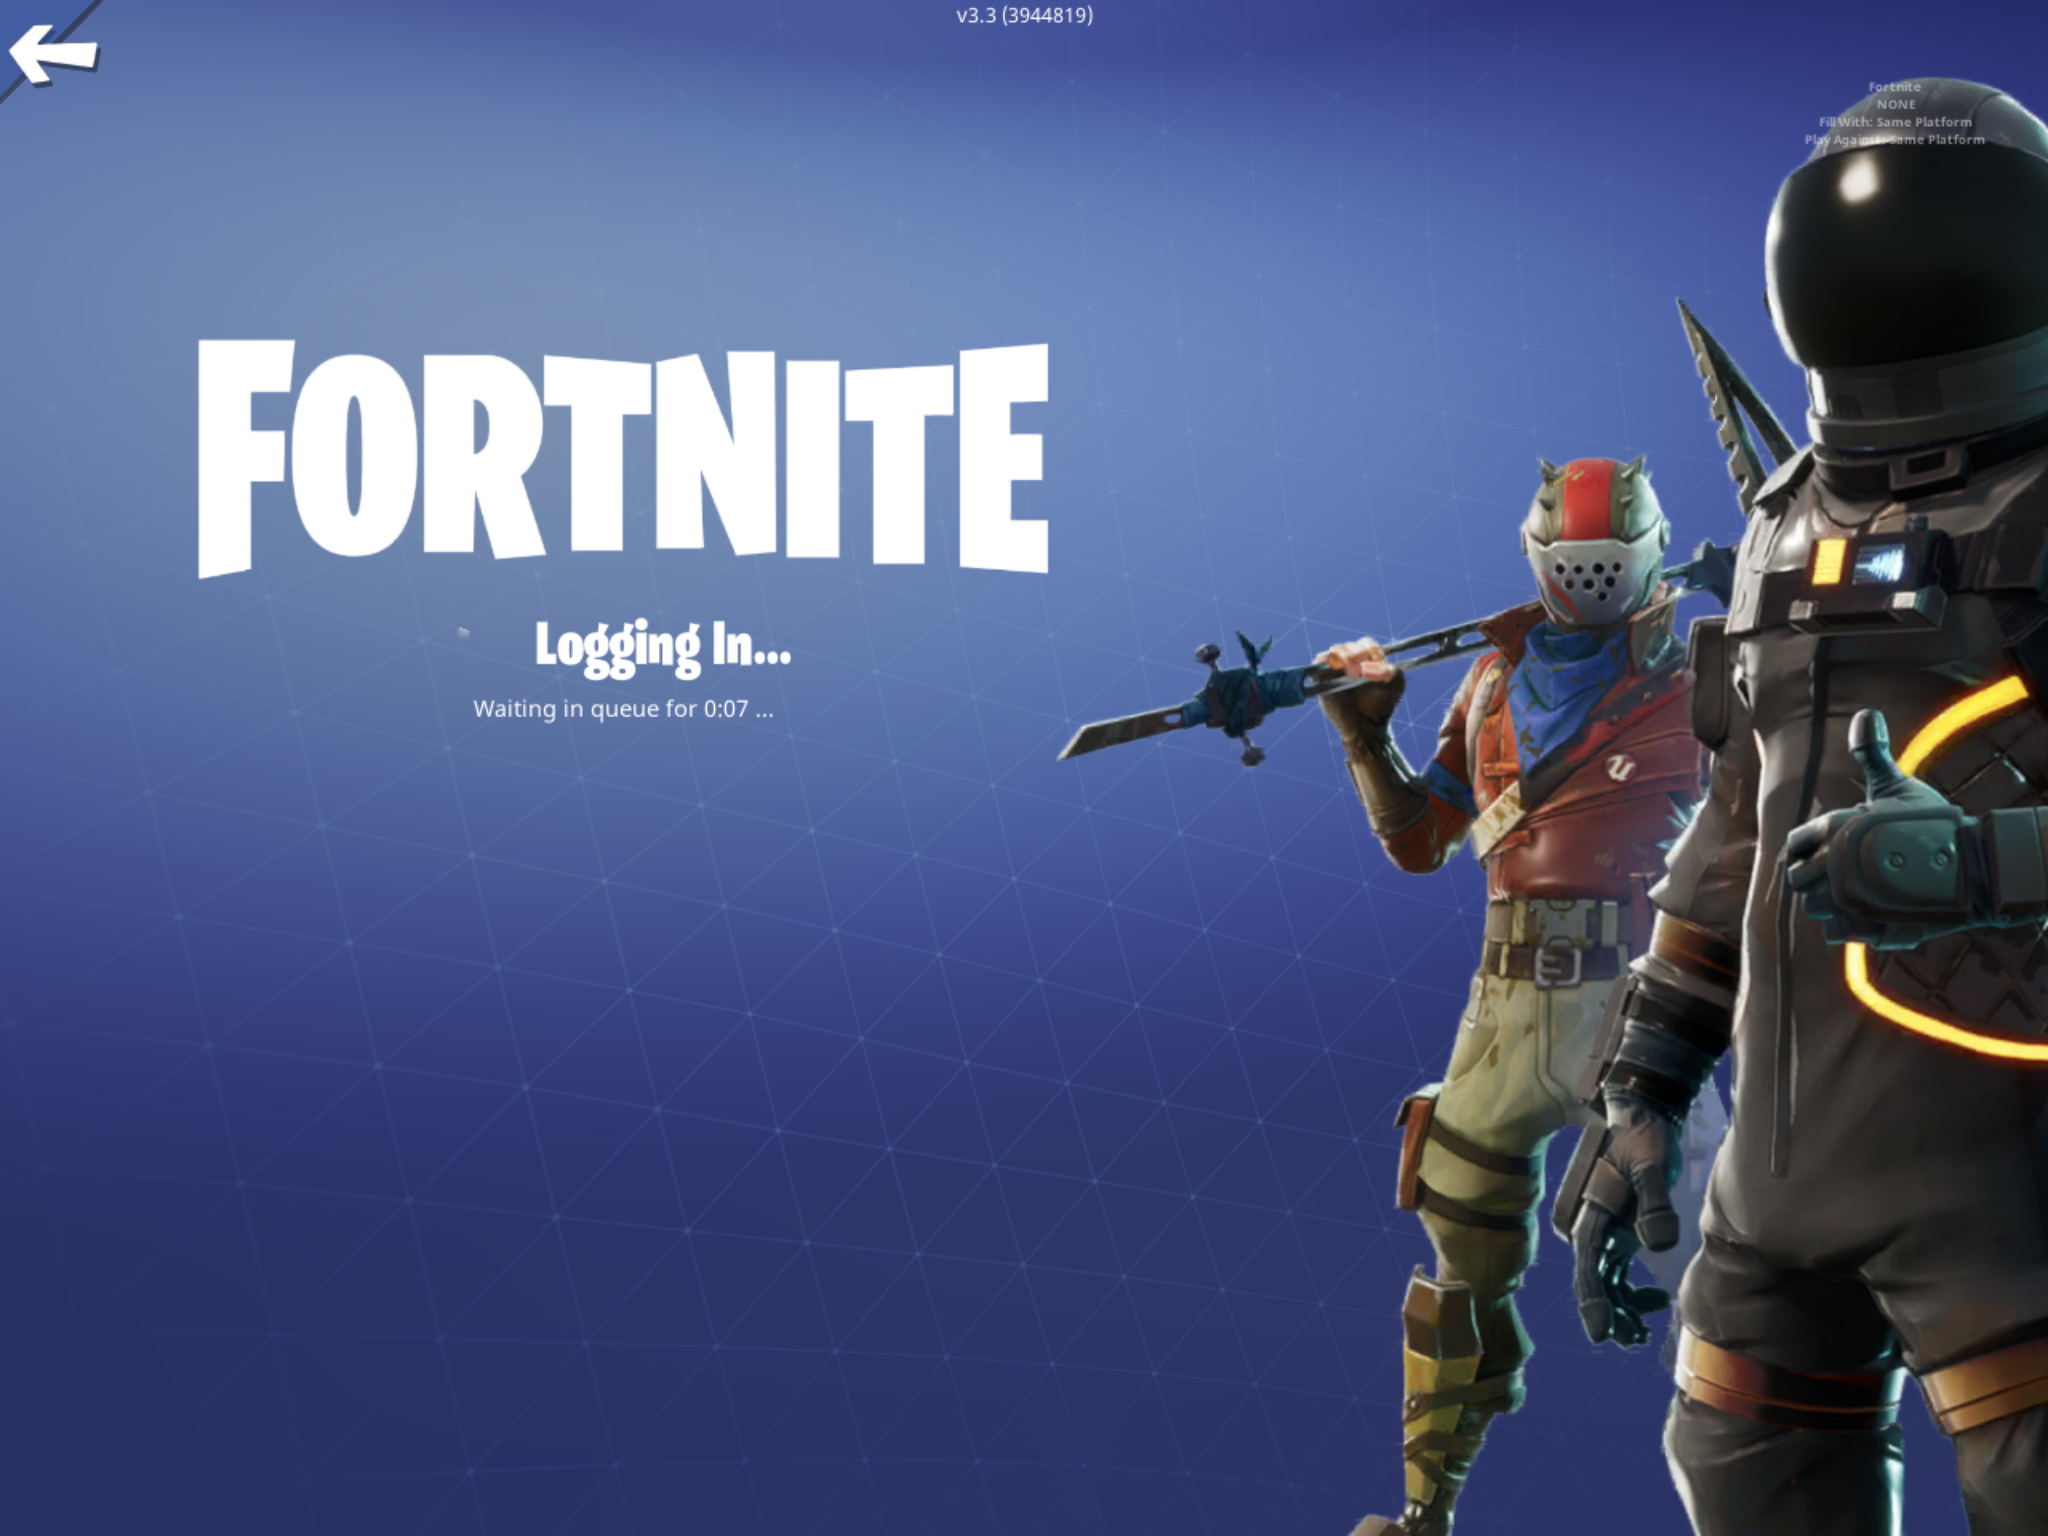 fortnite, mobile, download, link, how, to, friend, code, install, iOS